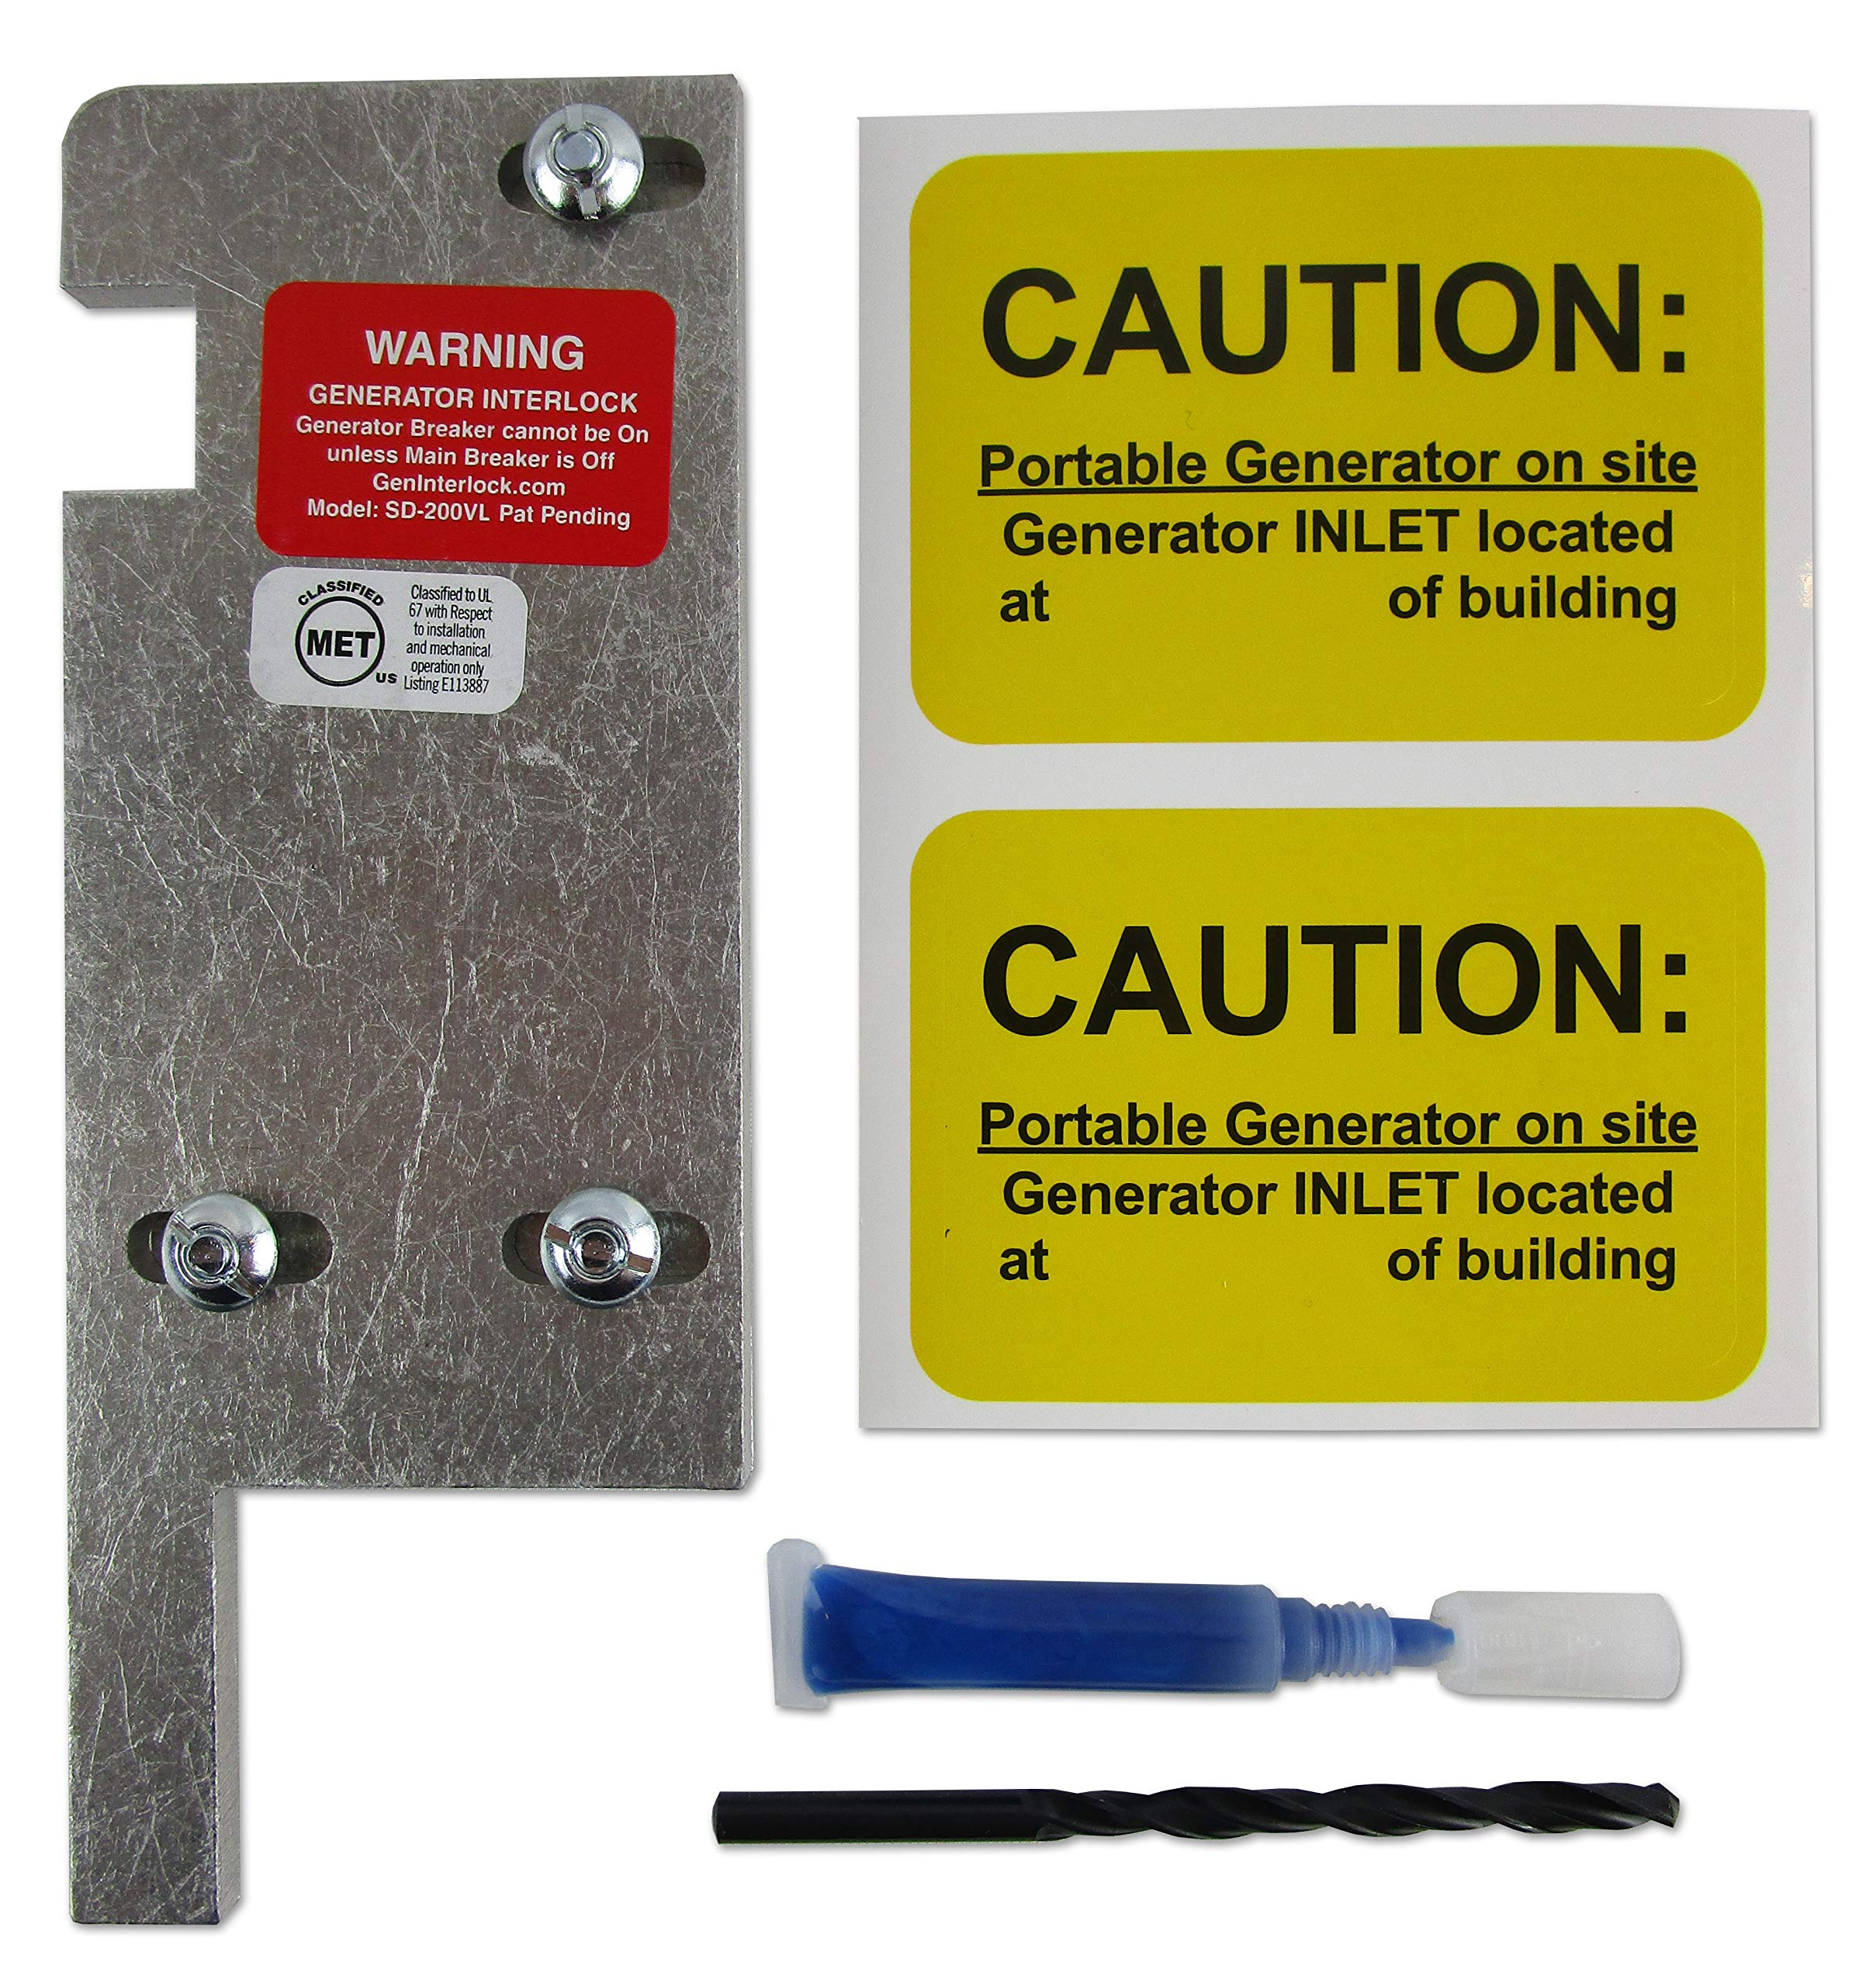 SD-3 Generator Interlock Kit for Square D panel